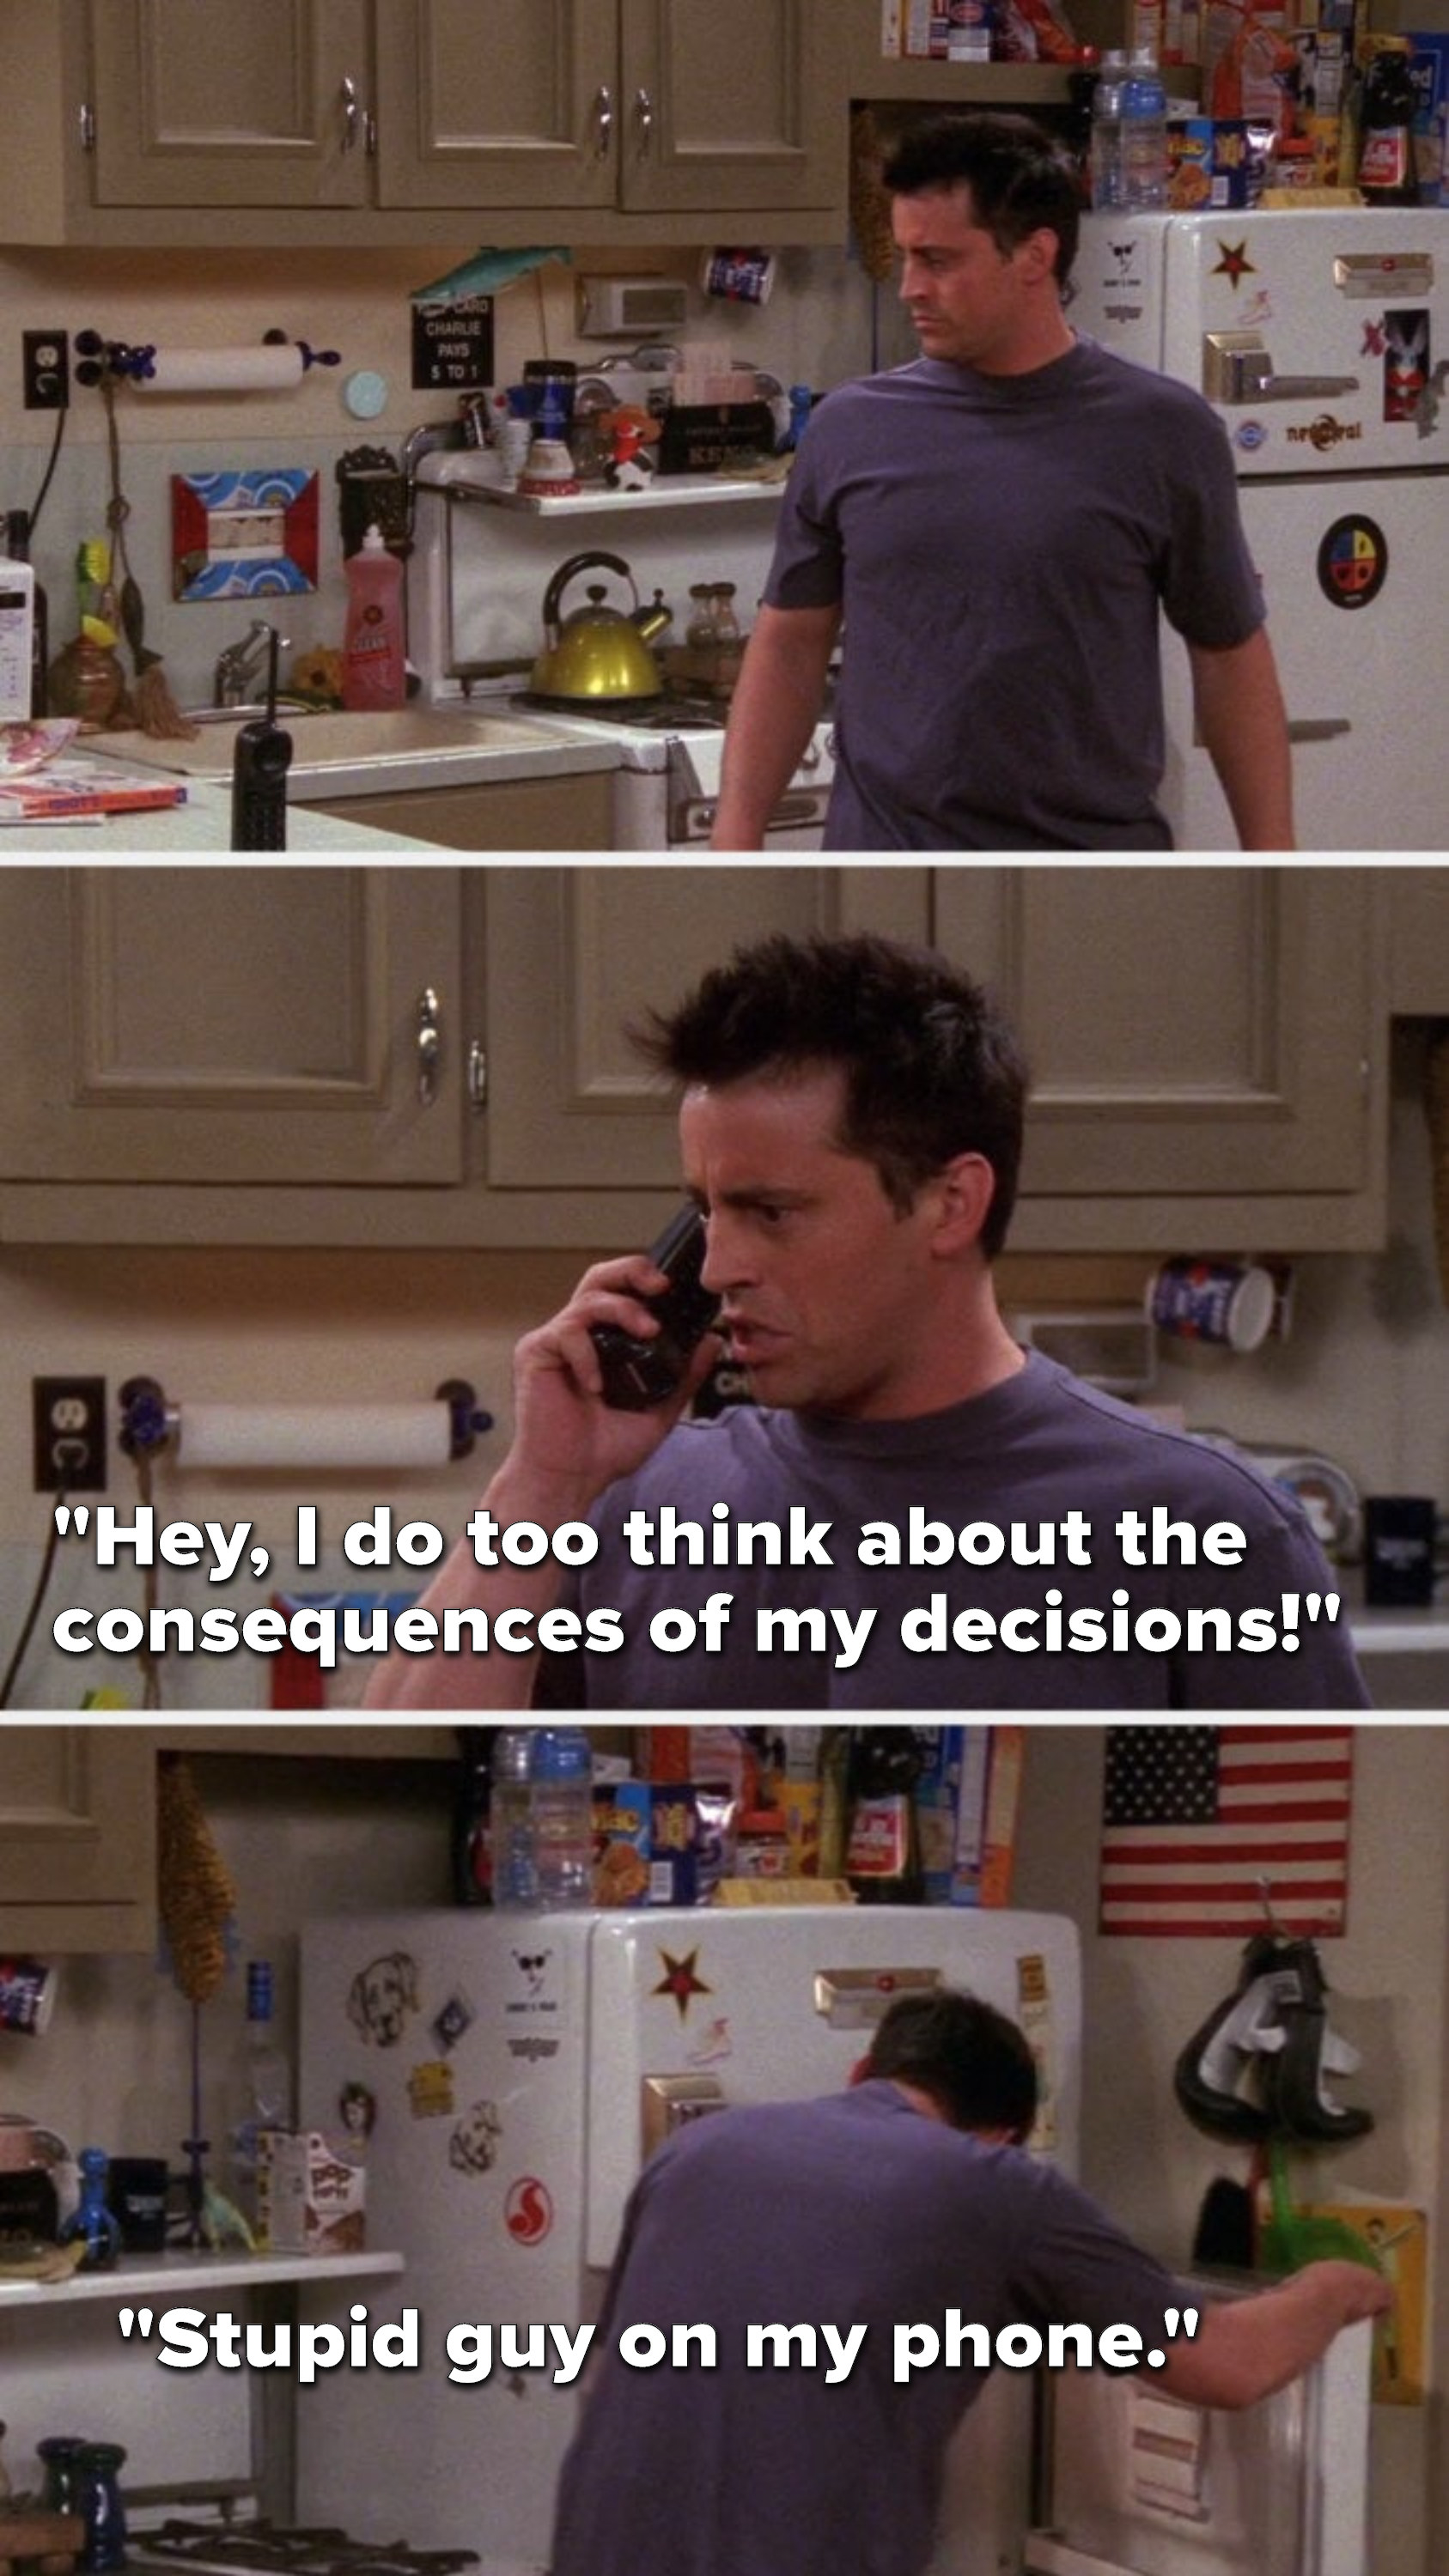 """Joey picks up the phone on the counter, listens, and says, """"Hey, I do too think about the consequences of my decisions,"""" then after he's hung up Joey says, """"Stupid guy on my phone."""""""